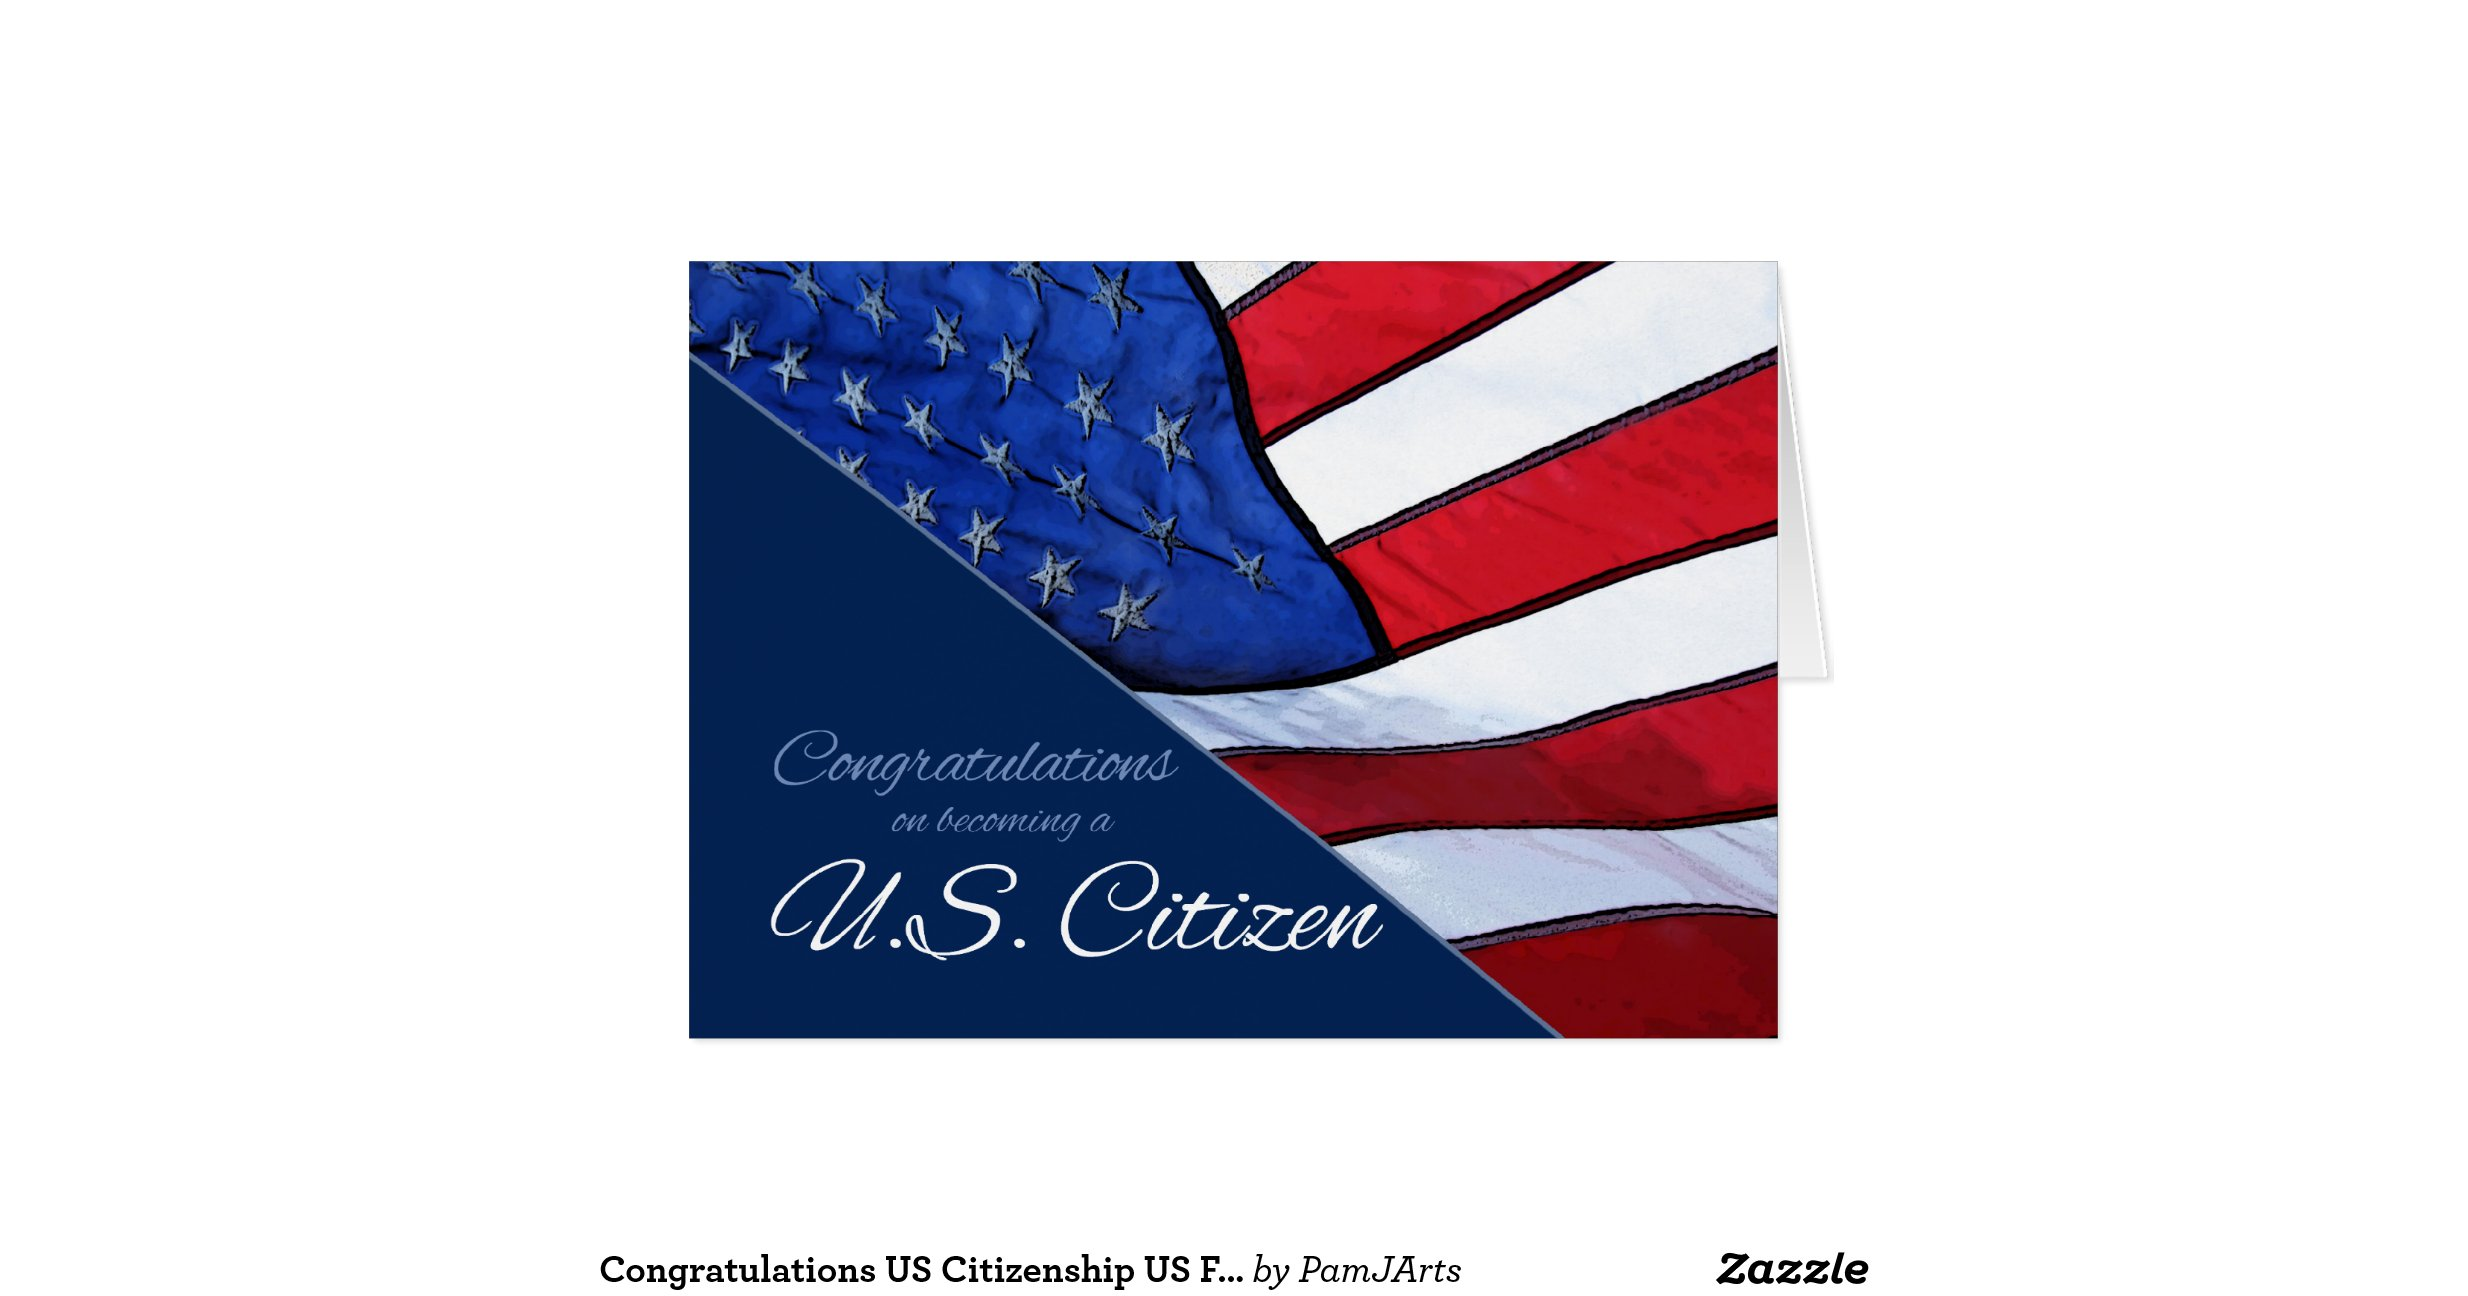 Congratulations On Citizenship Greeting Card